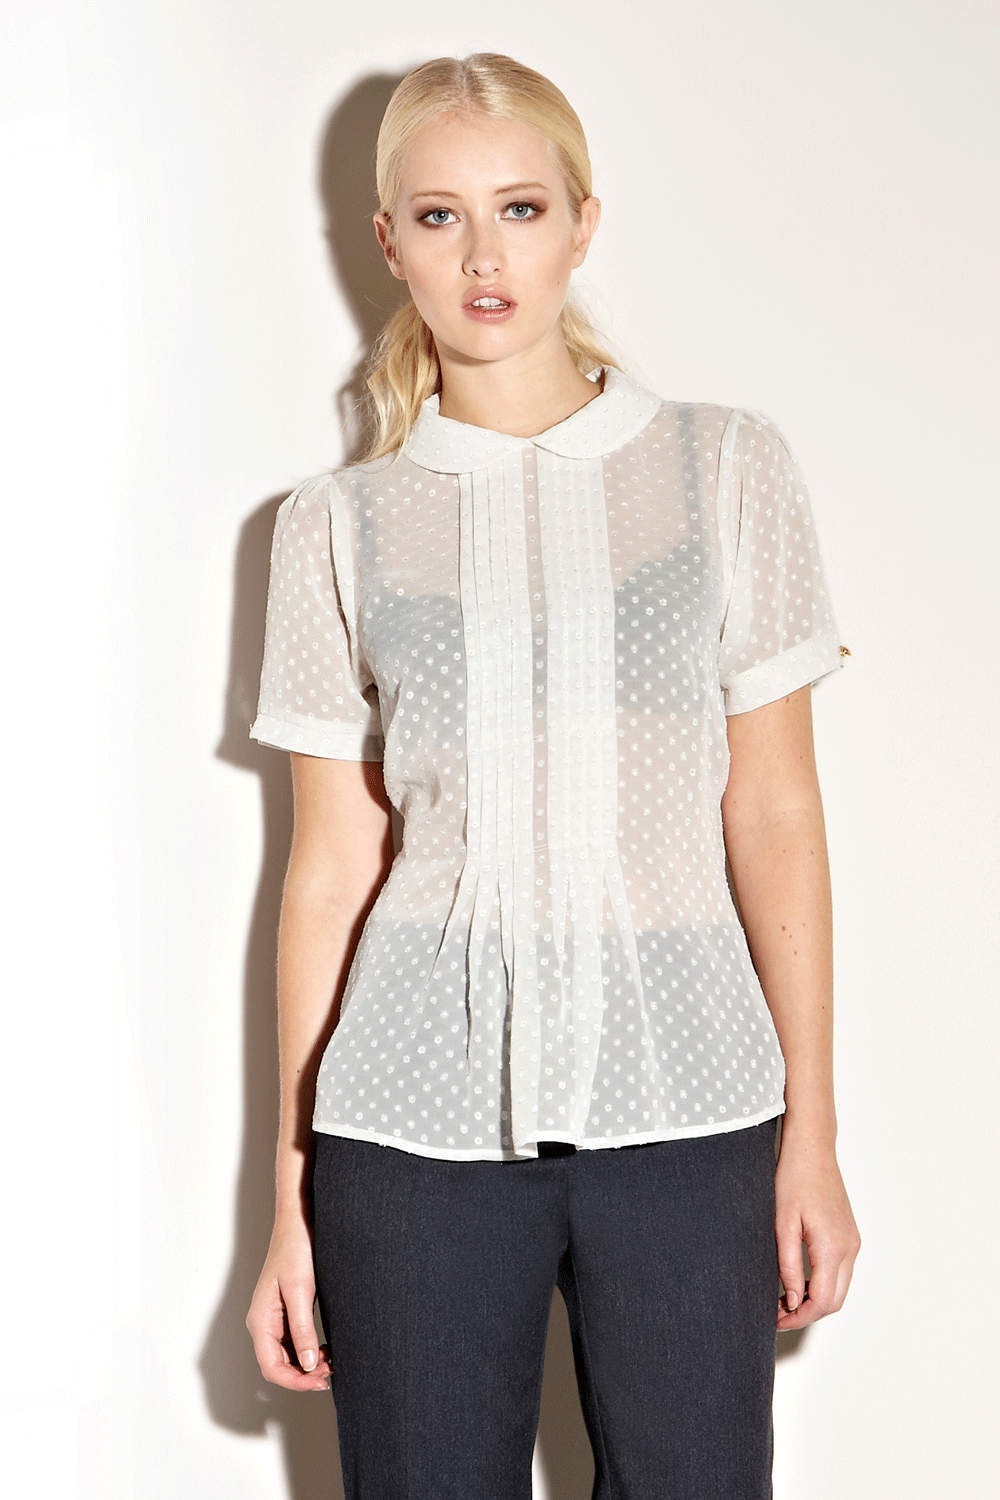 Warehouse Tops |  CREAM Peter Pan Dobby Spot Blouse | Fashion Clothing | Warehouse Fashions